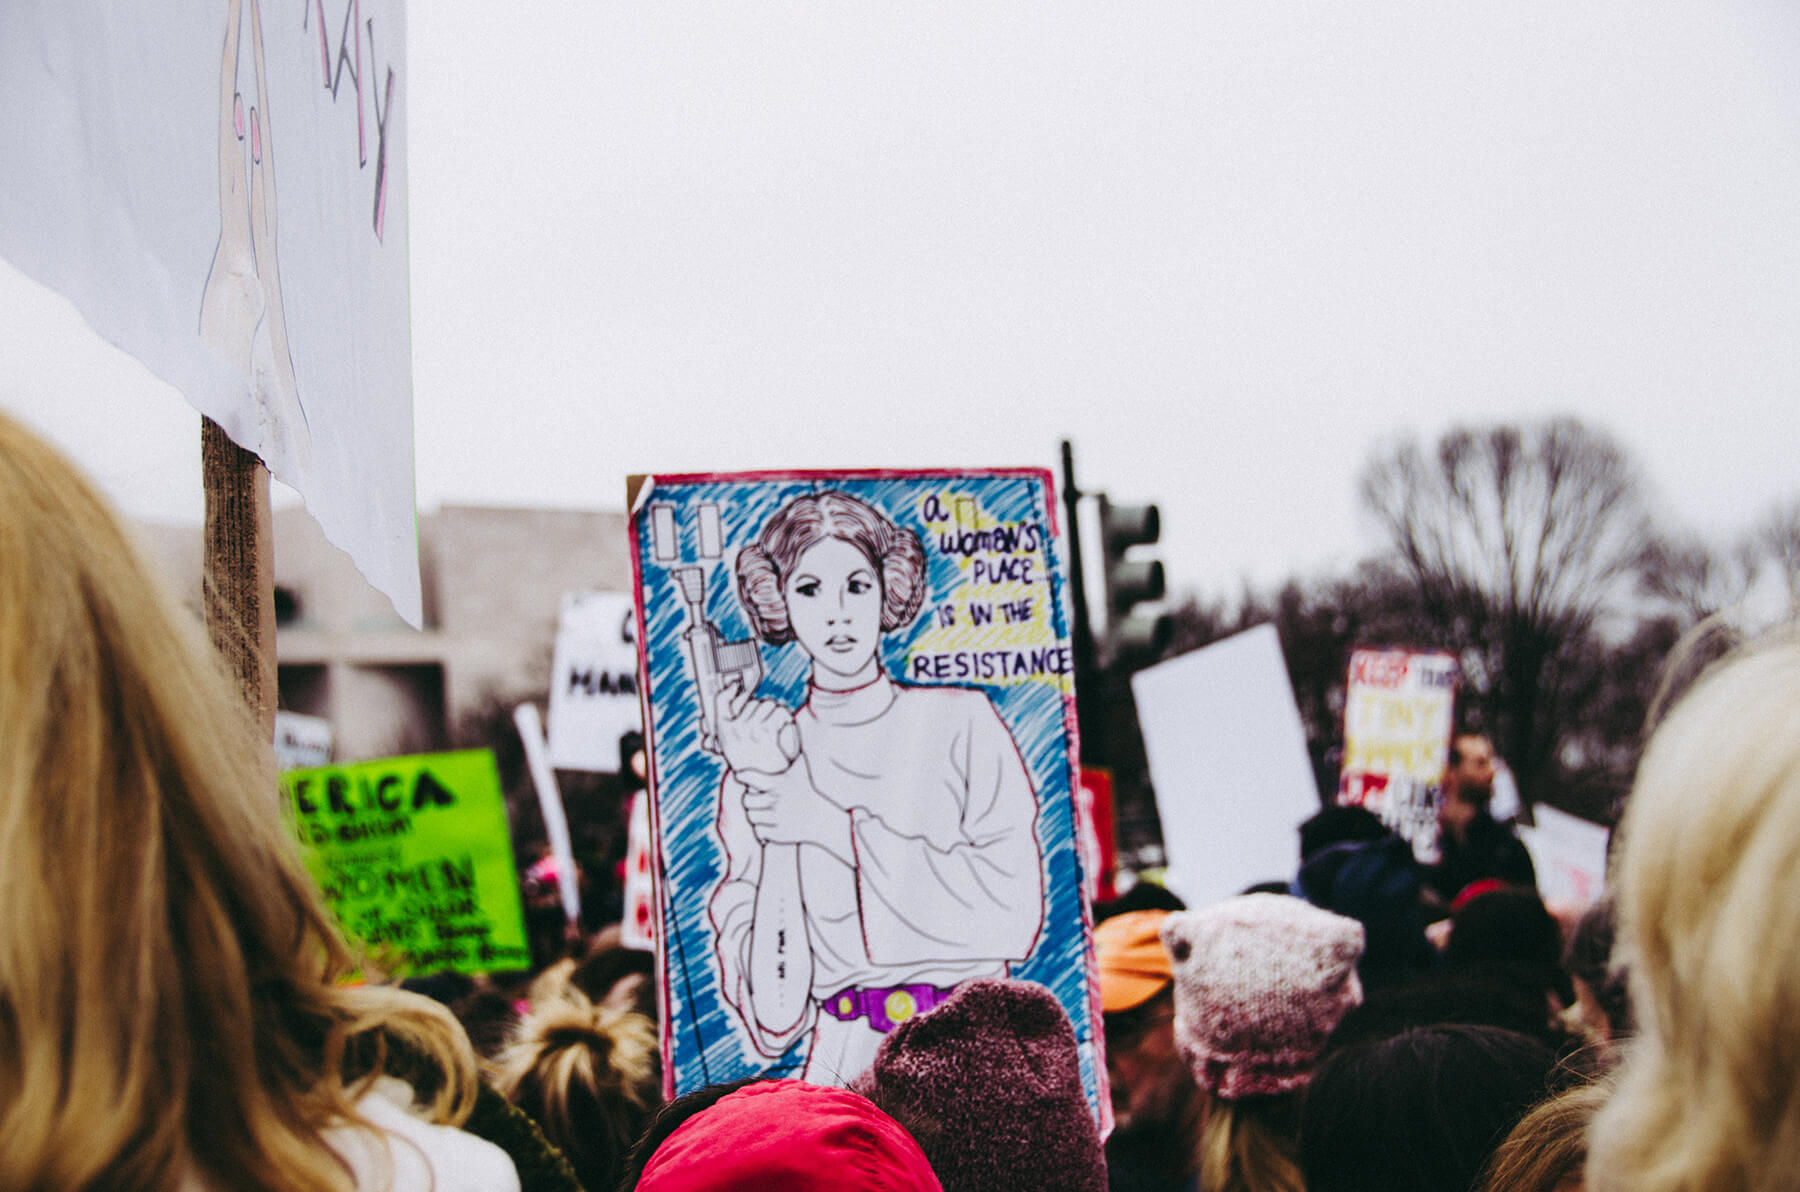 a woman's place is in the resistance image